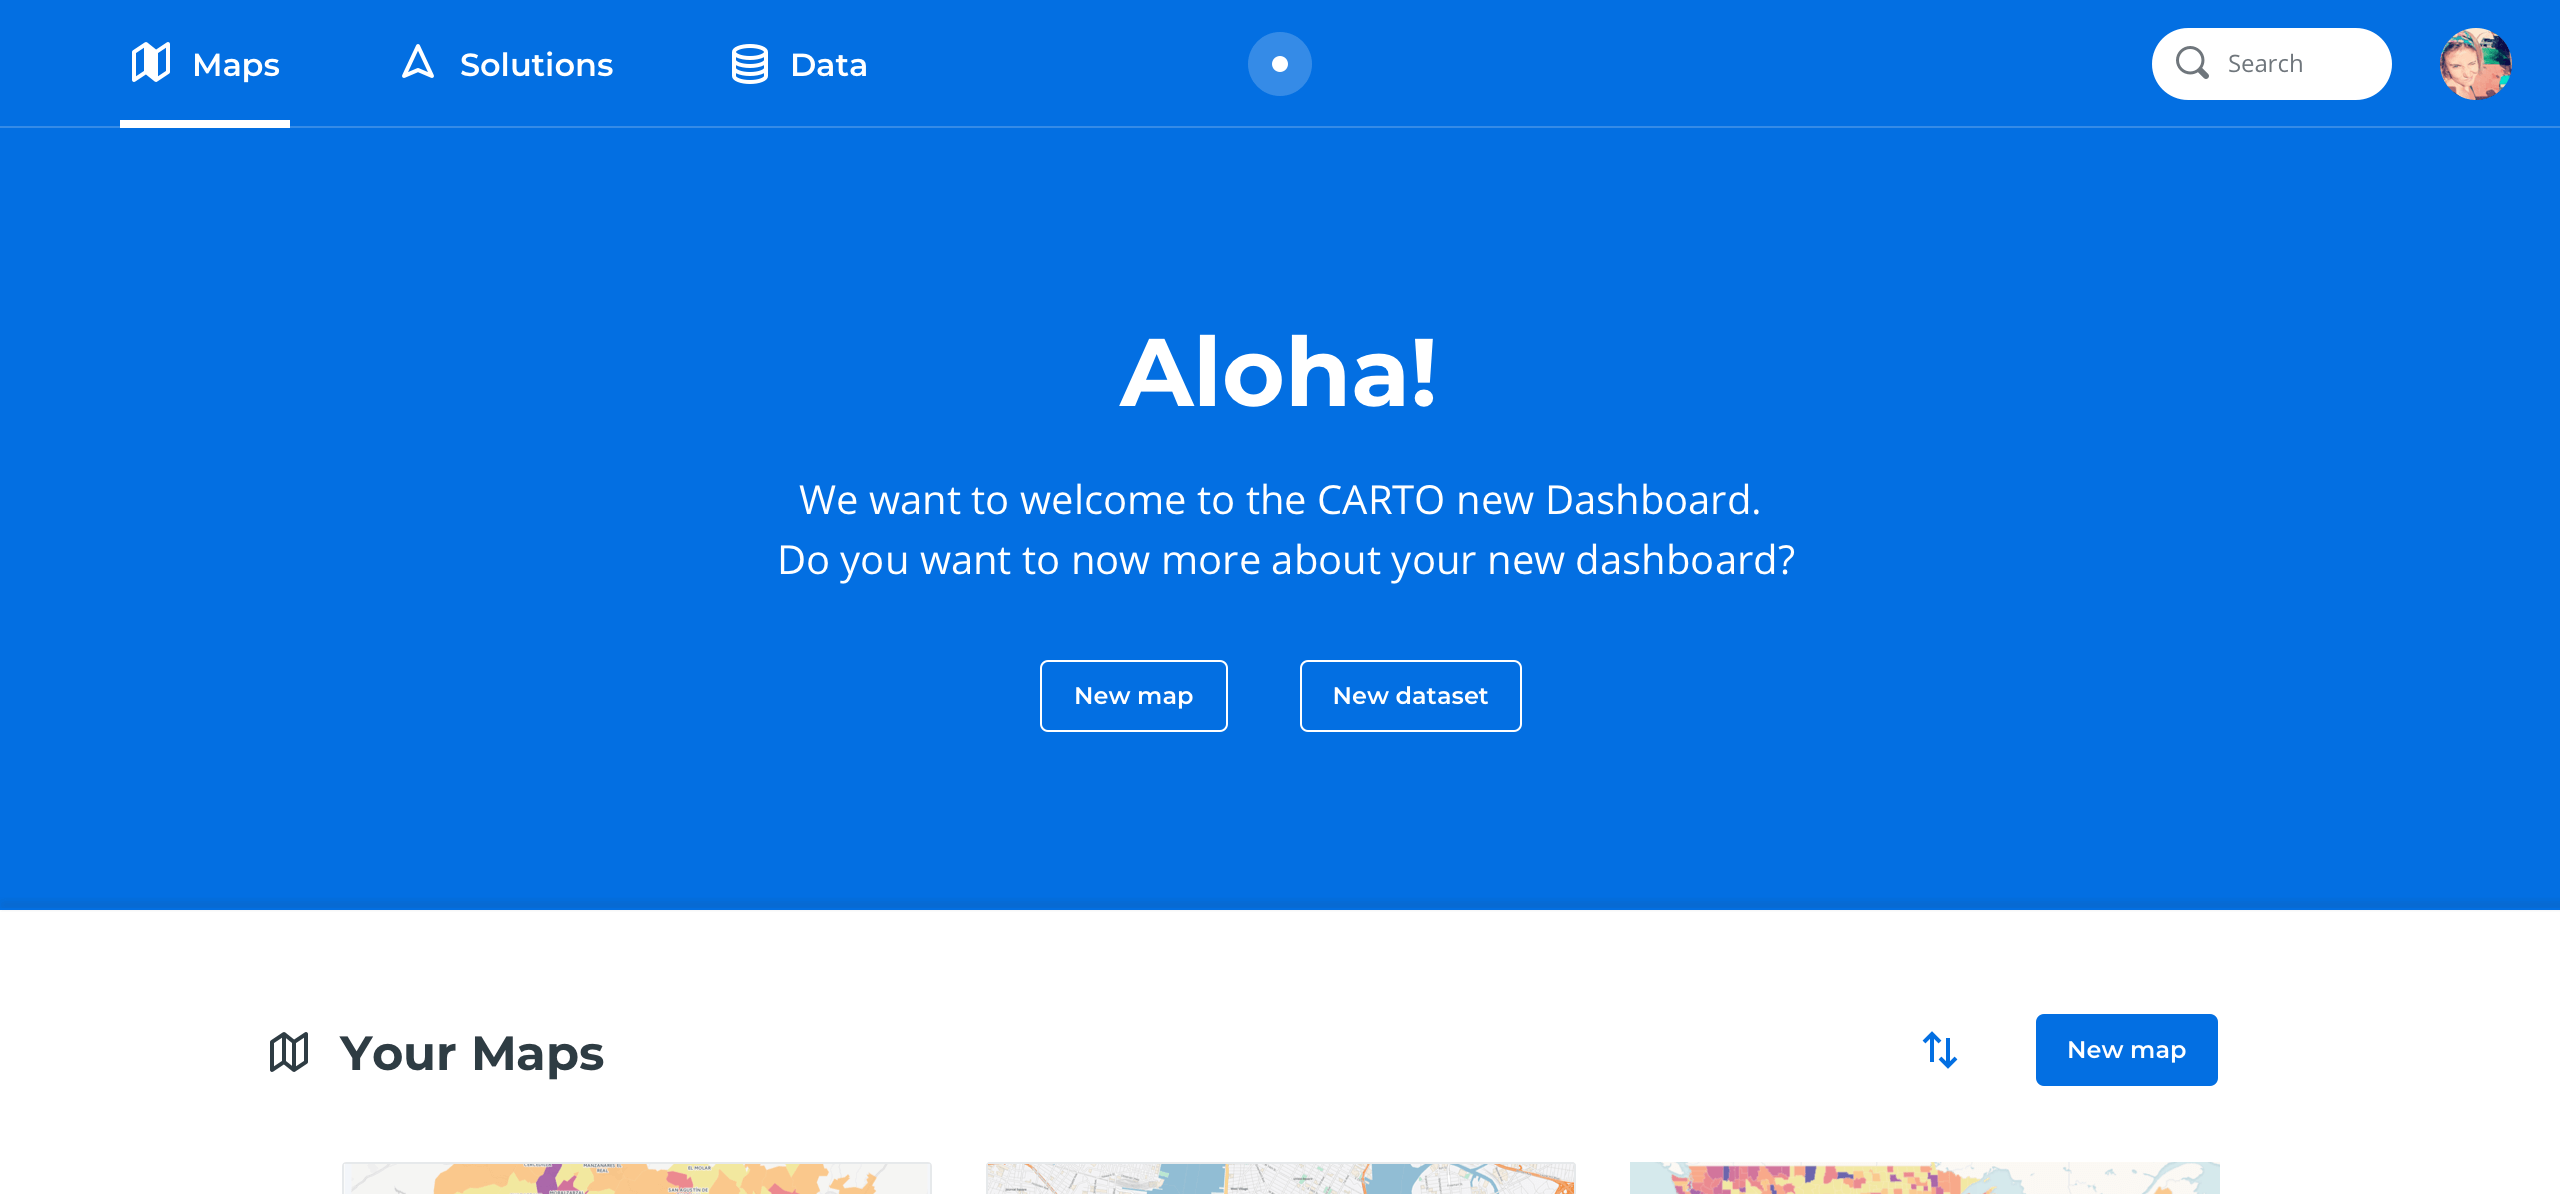 Introducing the new CARTO dashboard 🎉